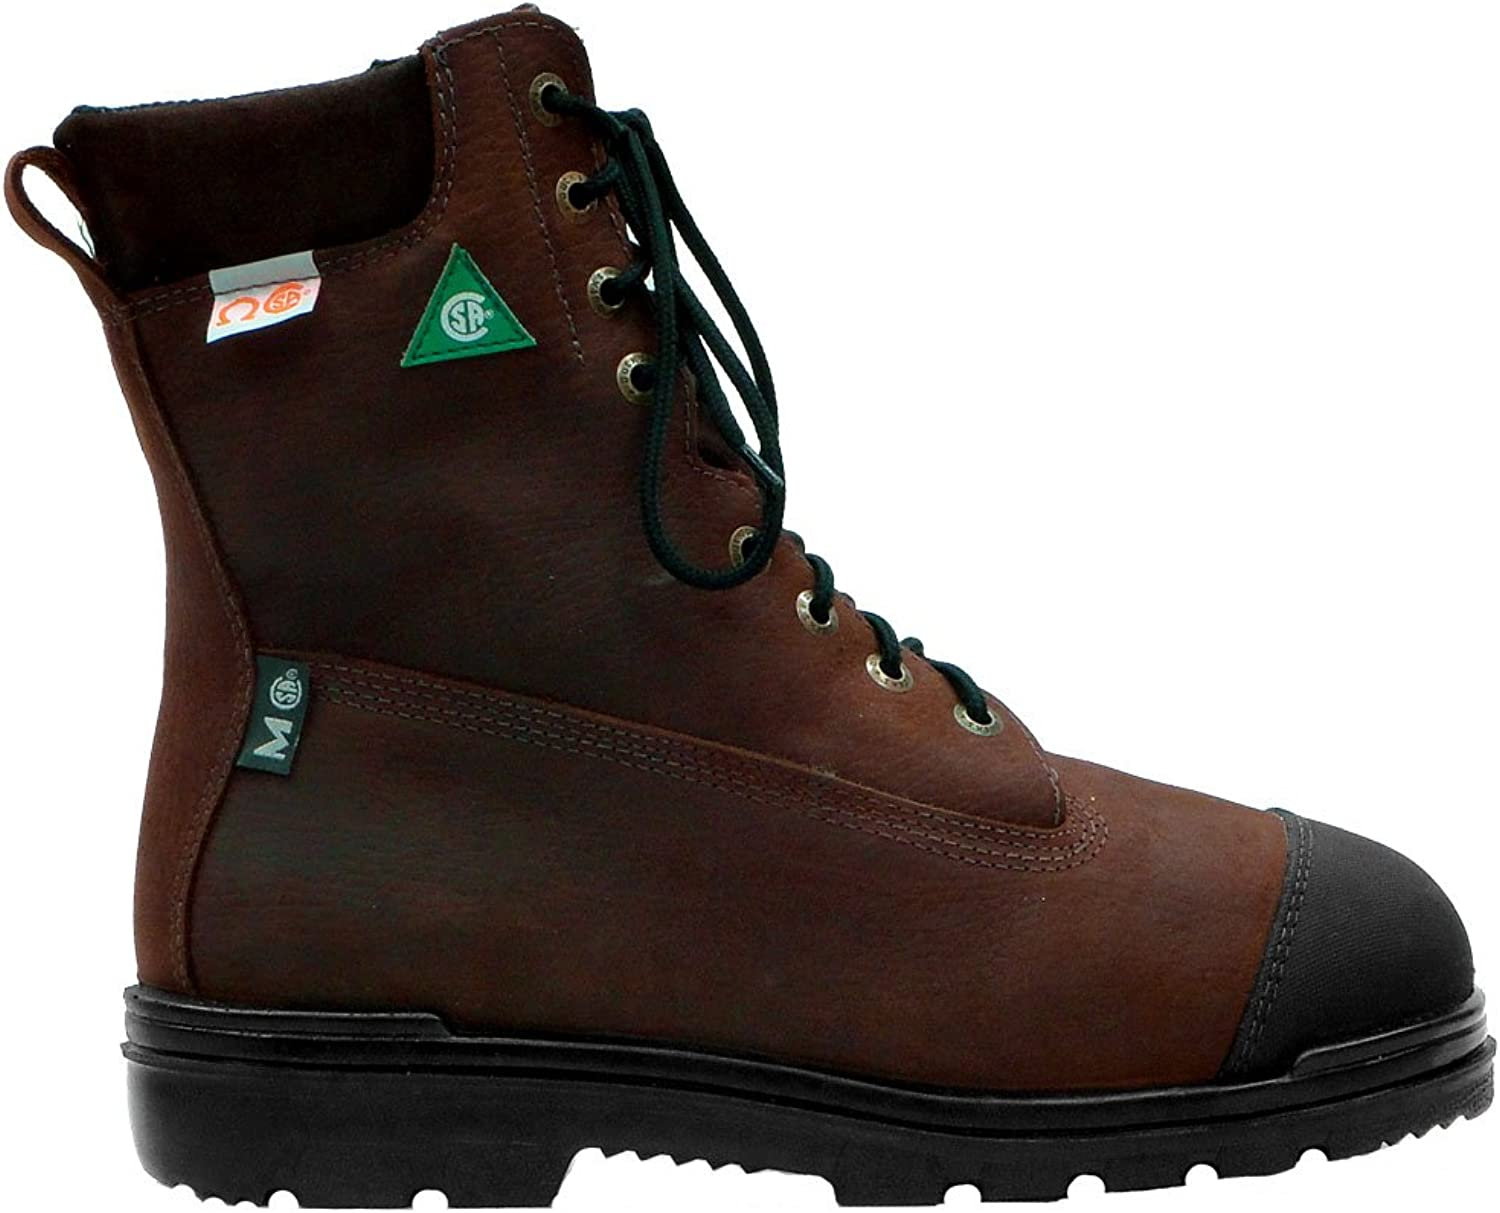 Tatra F6817-10 Internal Flexguard Leather Safety Boot